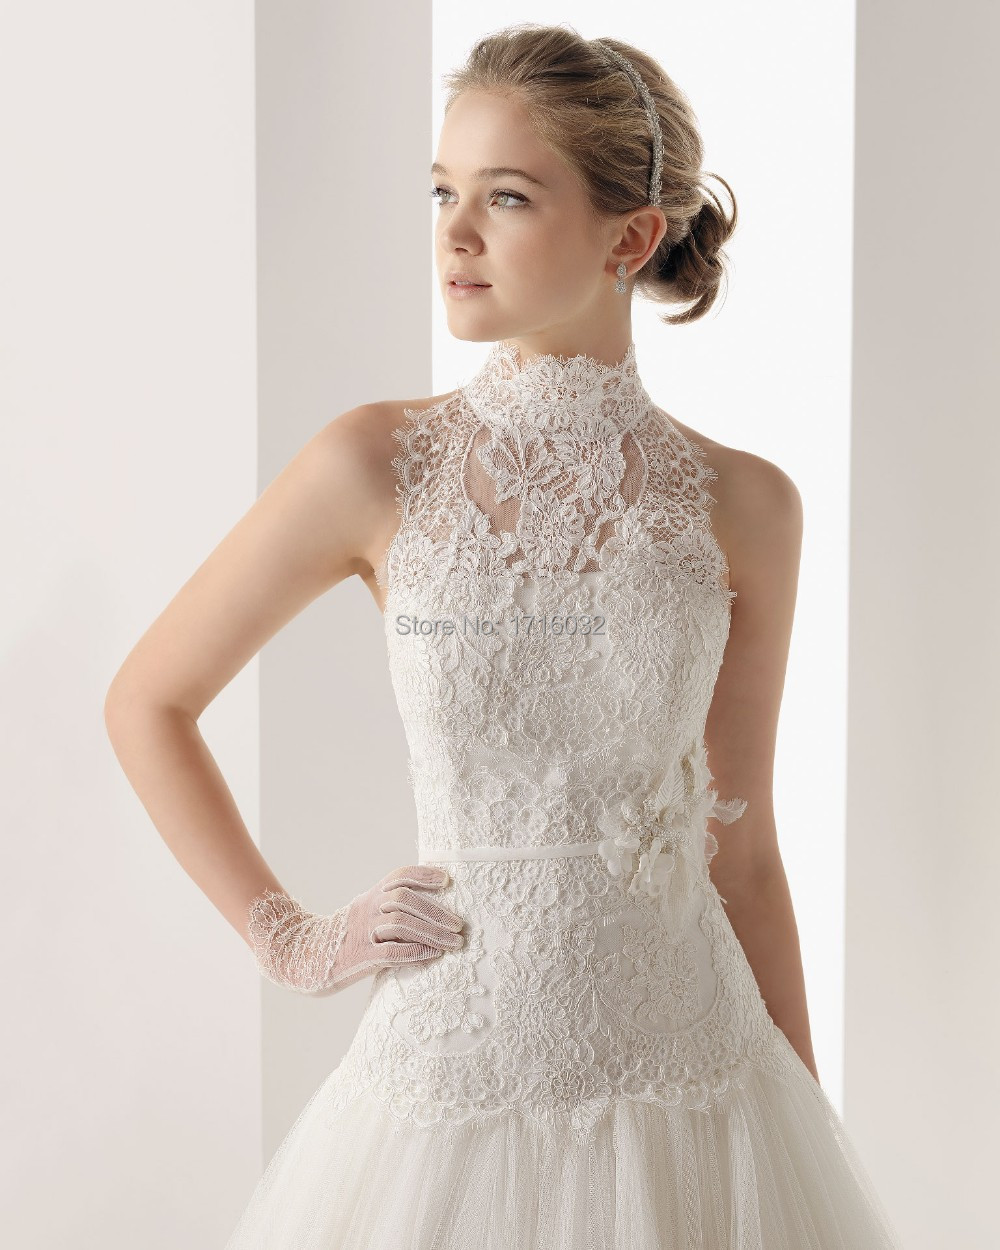 2015 Light Ivory Lace And See Through Wedding Dress Peplum High Neck Bride Dress Princess